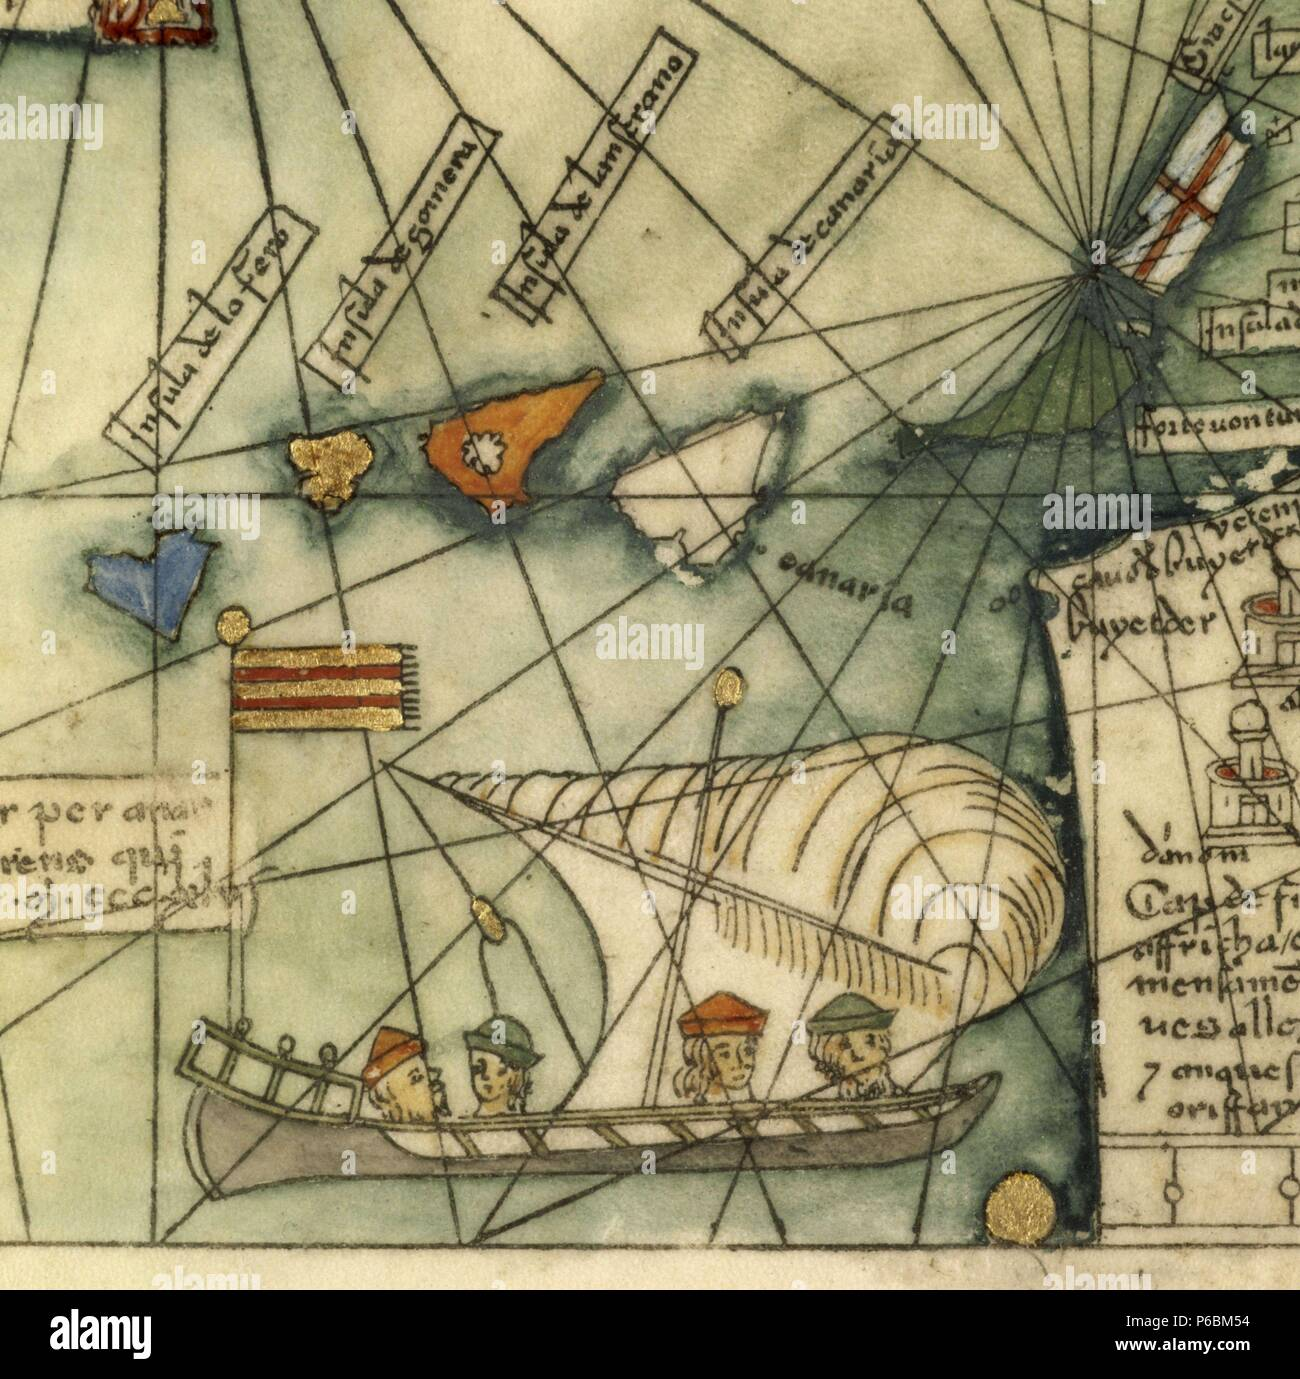 Detail of Catalan Atlas by Abraham Cresques, c. 1376. Museum: Museo Marítimo, Barcelona. Stock Photo